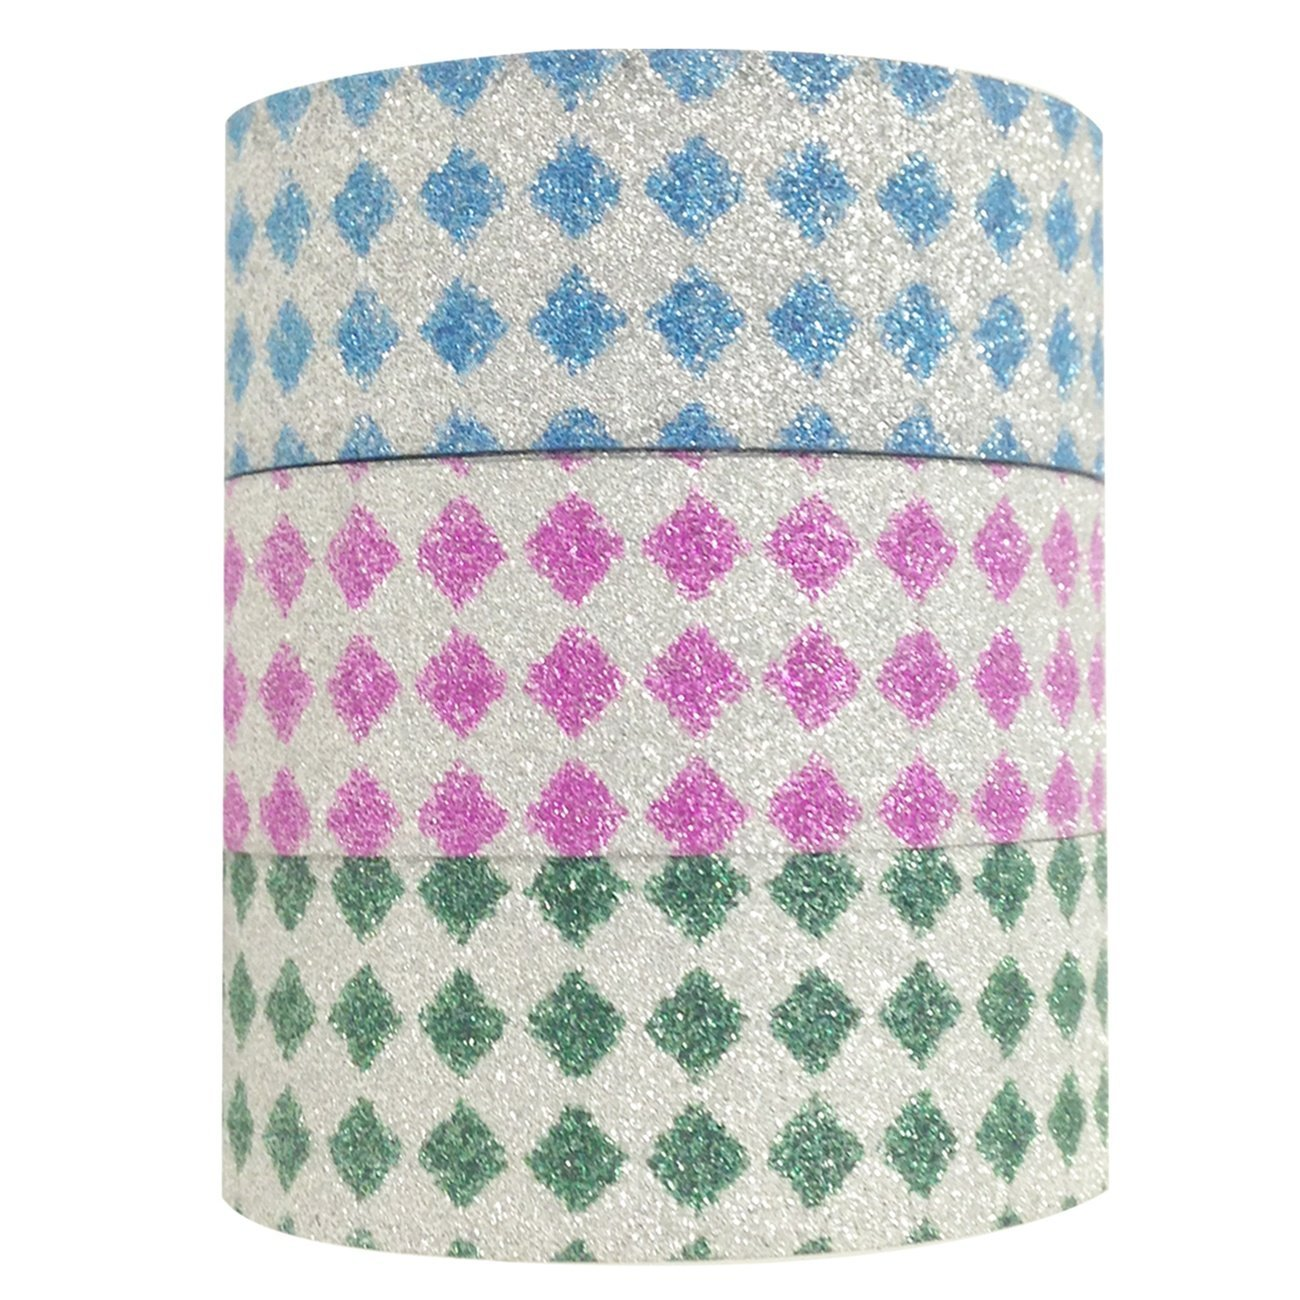 Wrapables Bright Diamonds Japanese Washi Masking Tape (Set of 3)